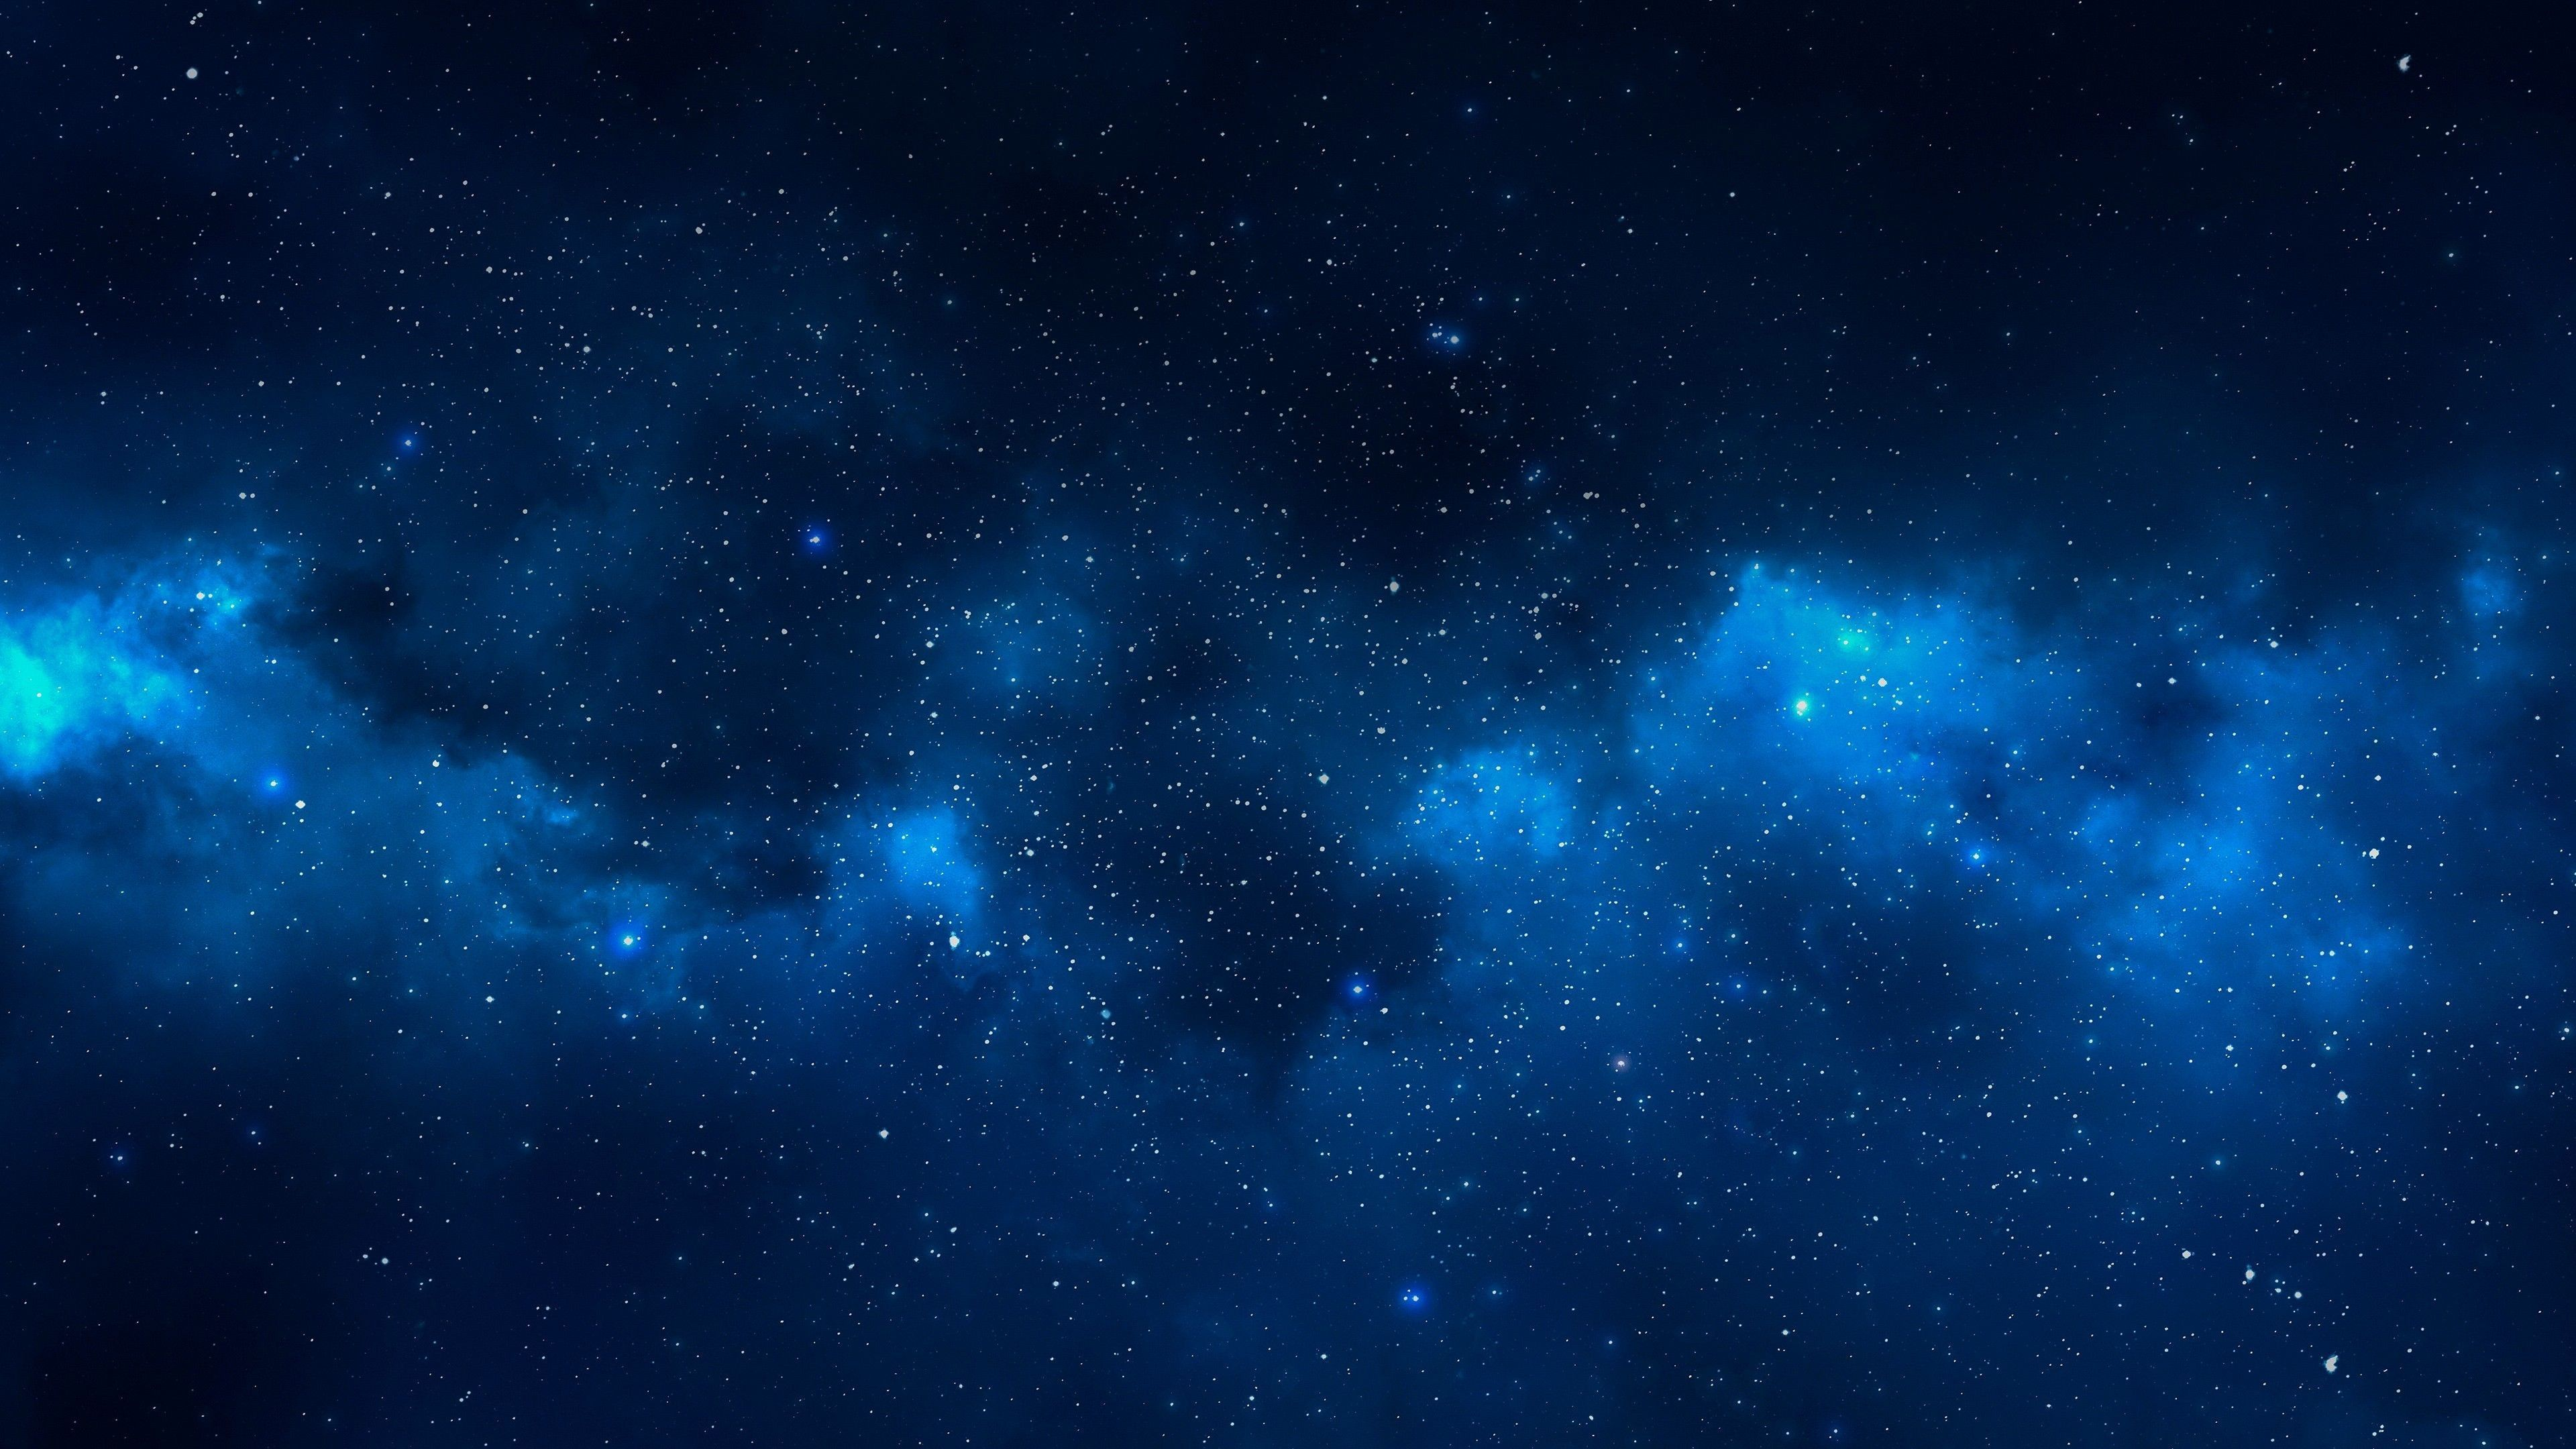 4k Space Wallpapers For Desktop Ipad Iphone